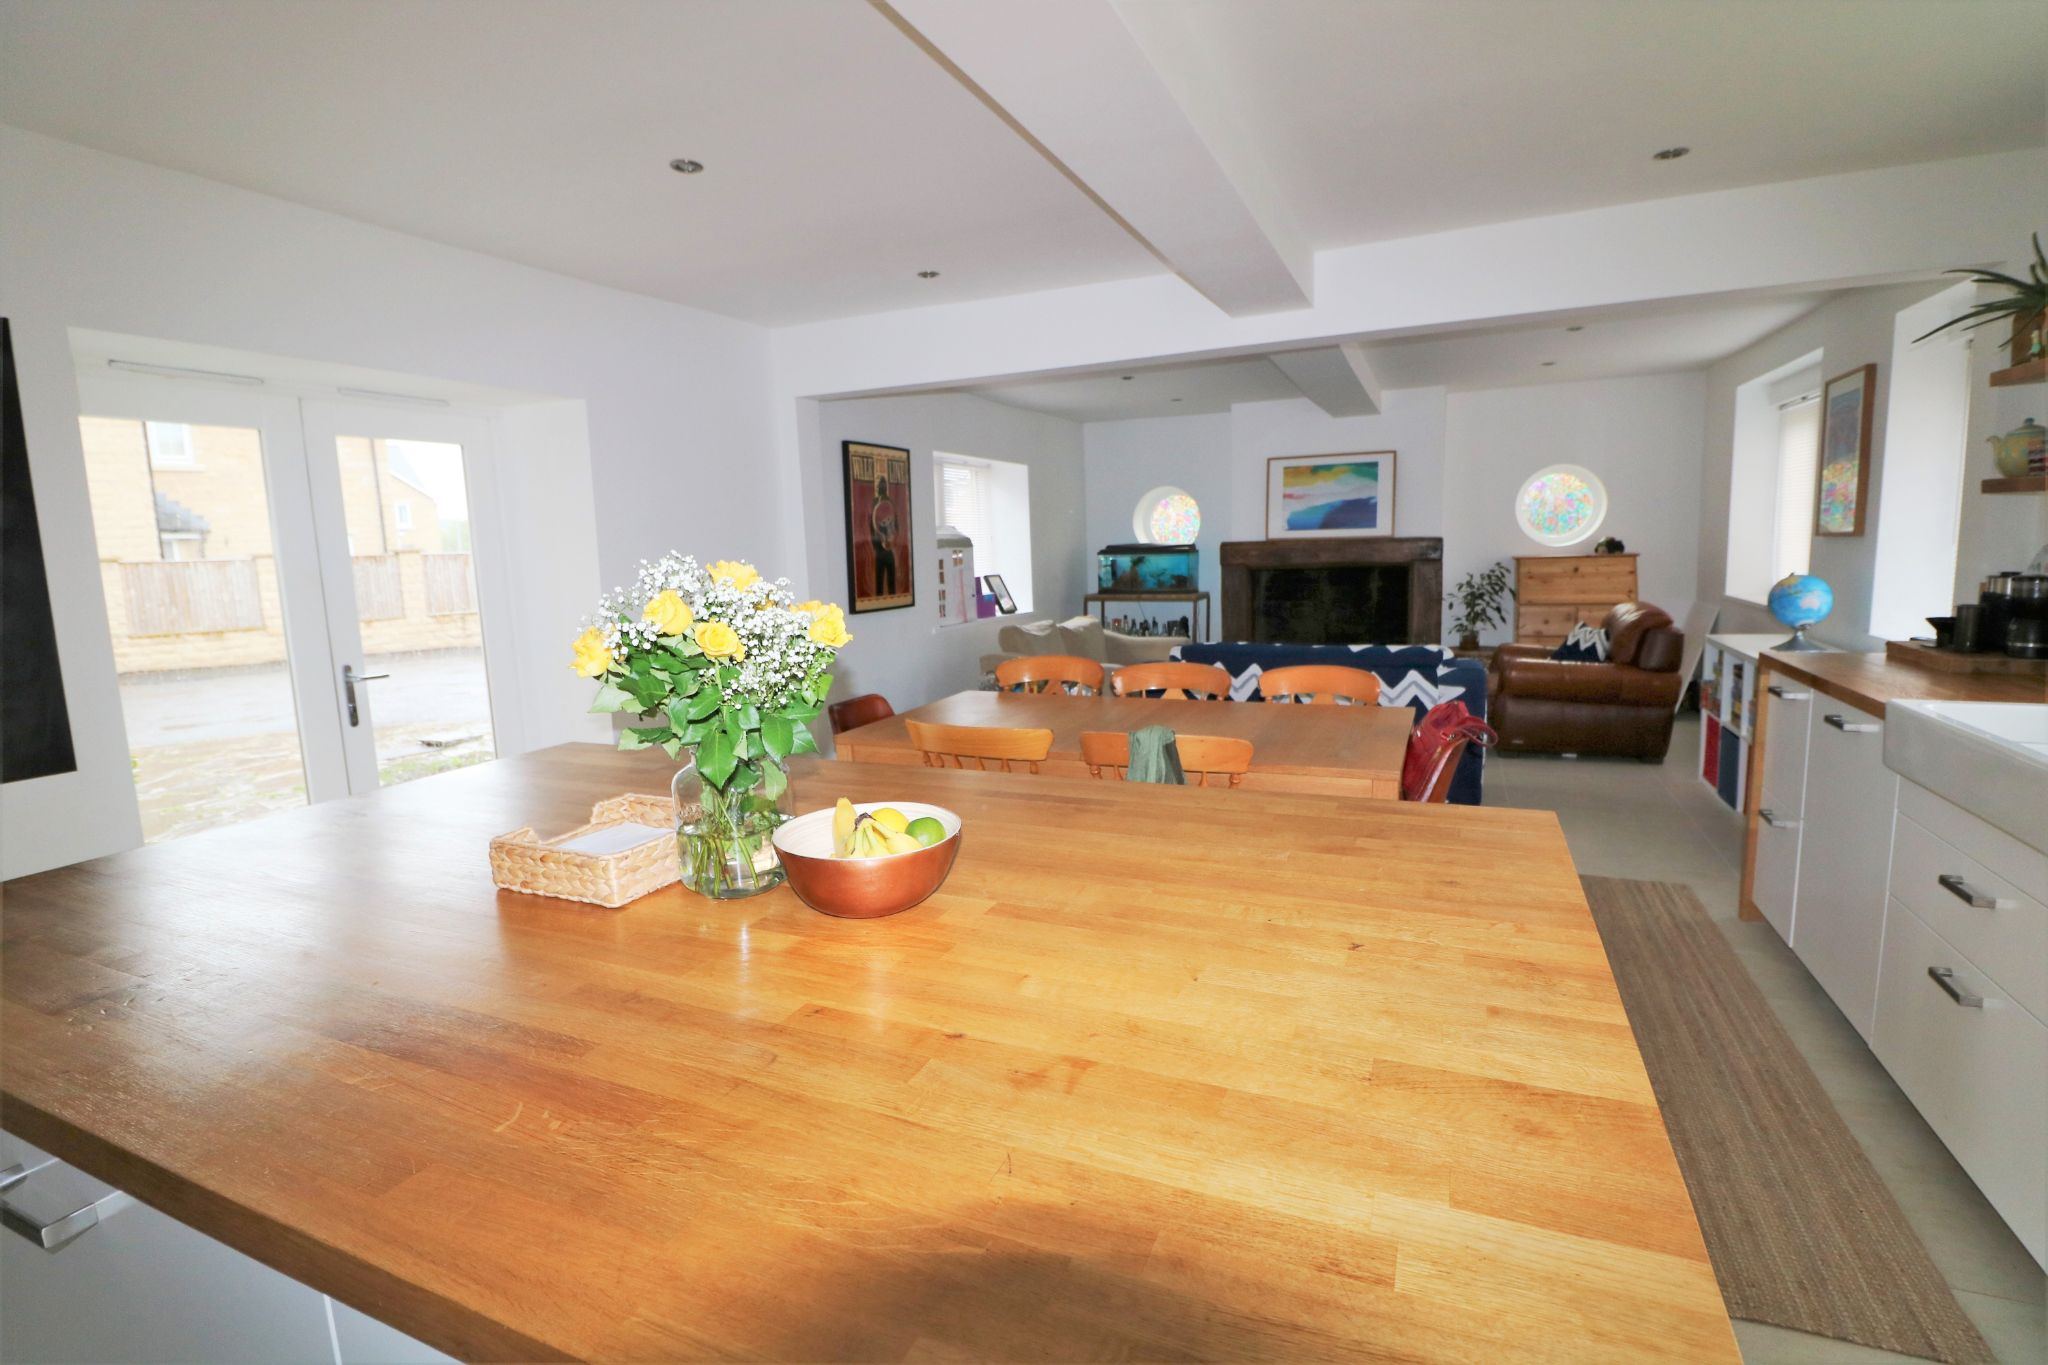 6 Bedroom Detached House For Sale - Photograph 9